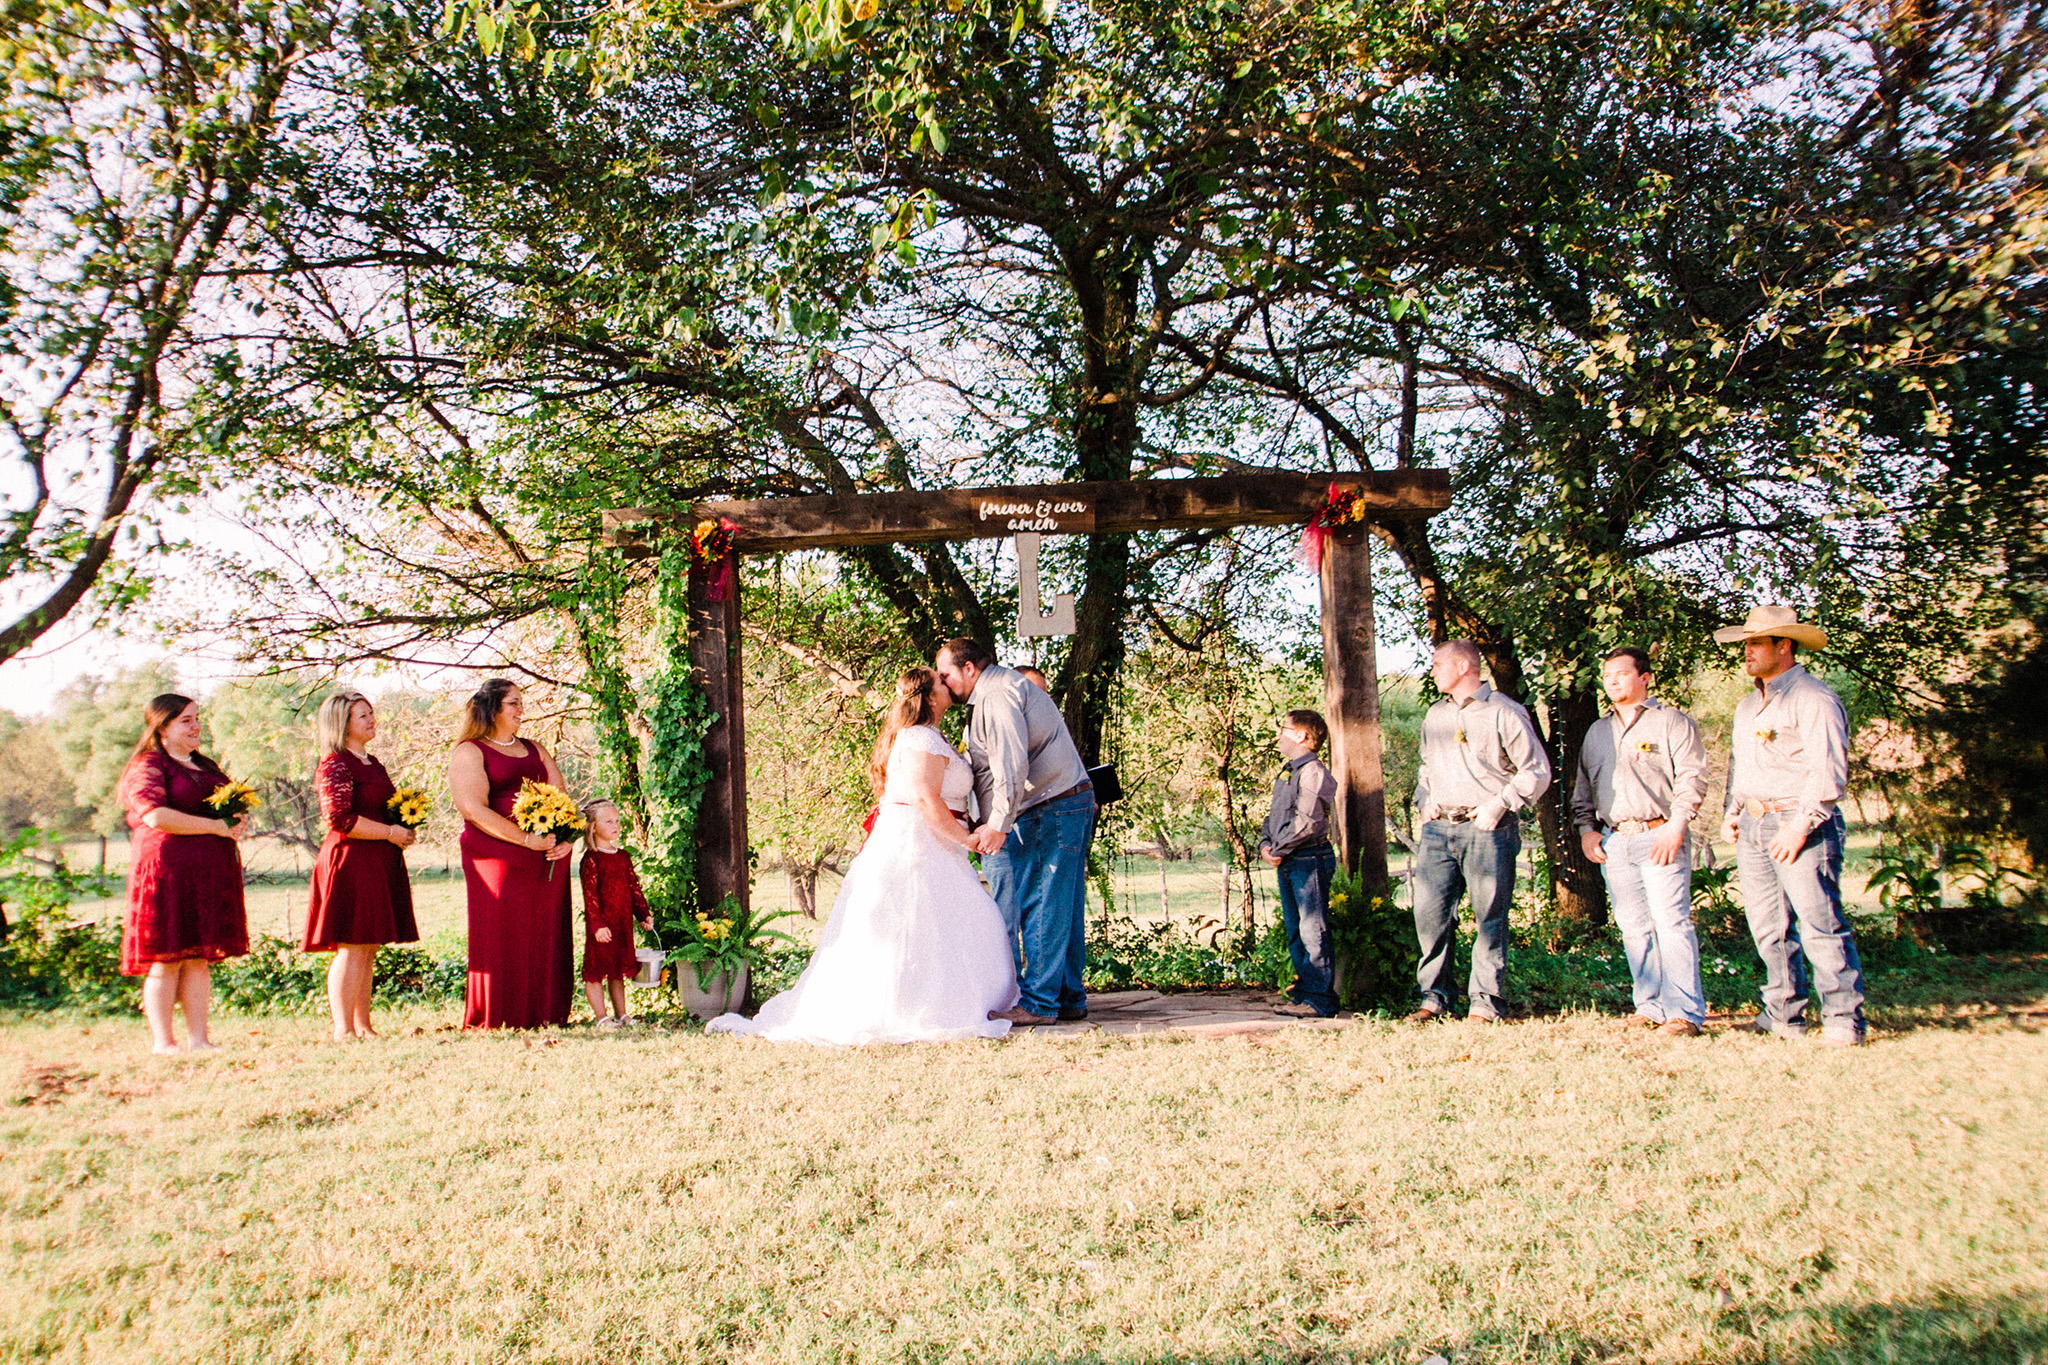 SPC_LoveladyWedding-9864.jpg